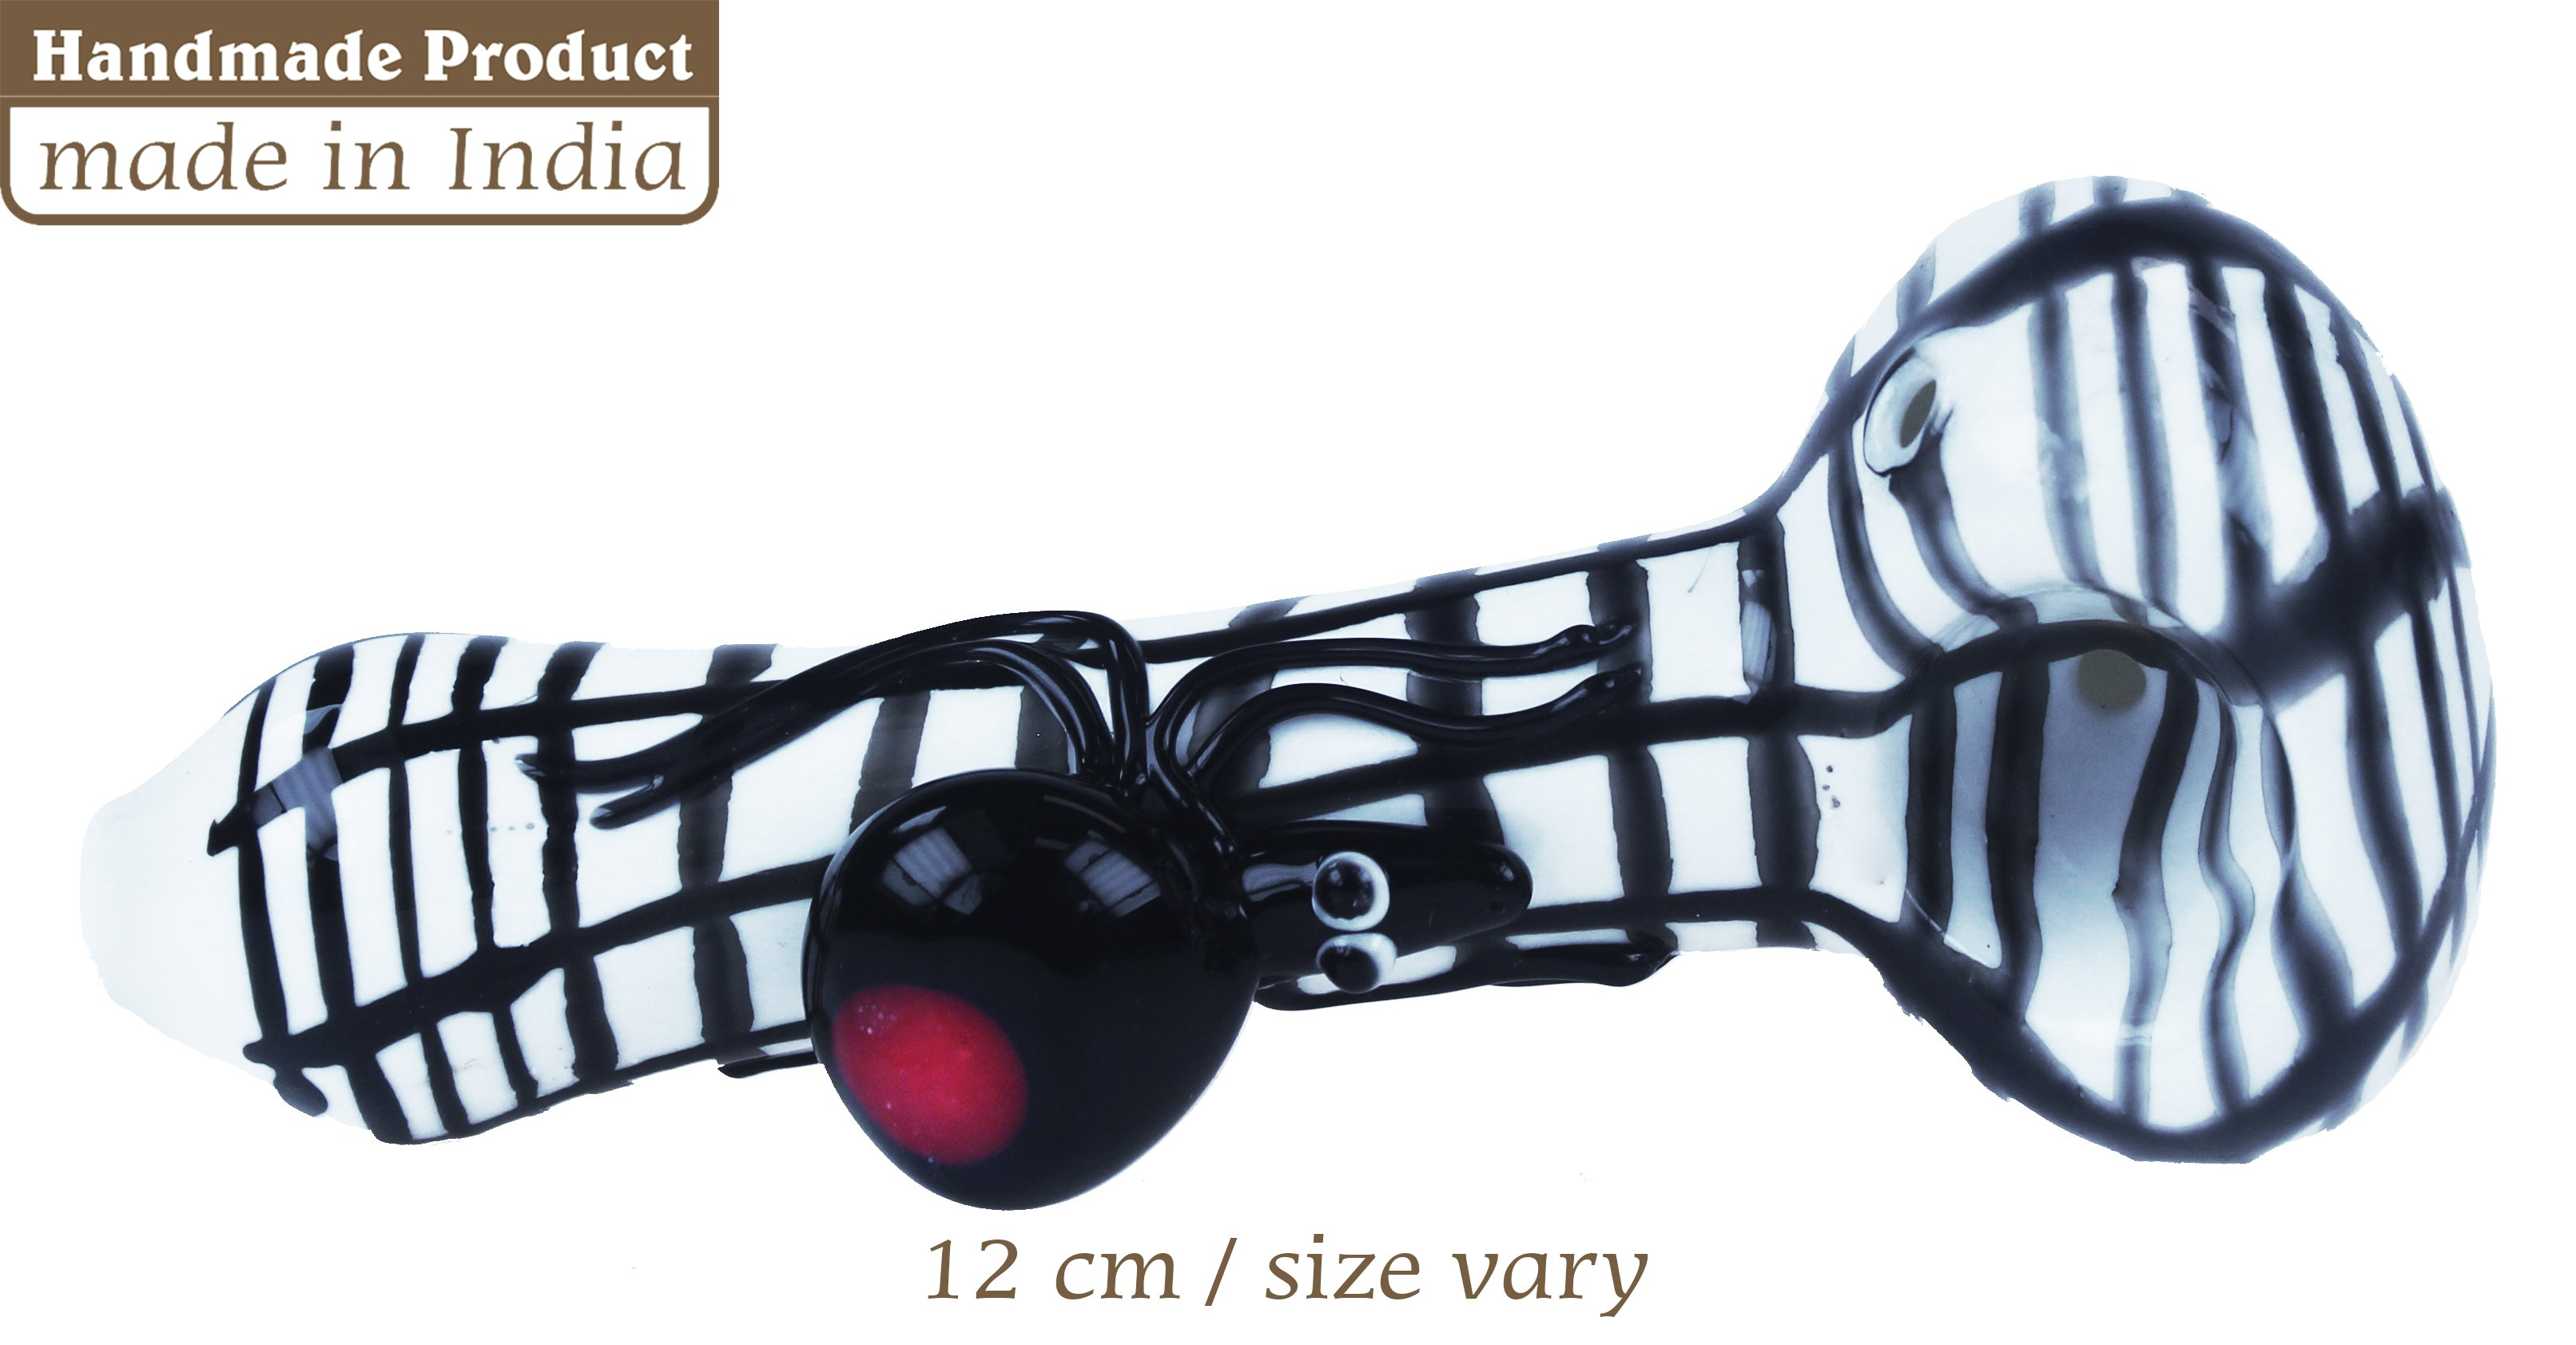 3G Peanut Pipe With Redback Sipder (12cm)